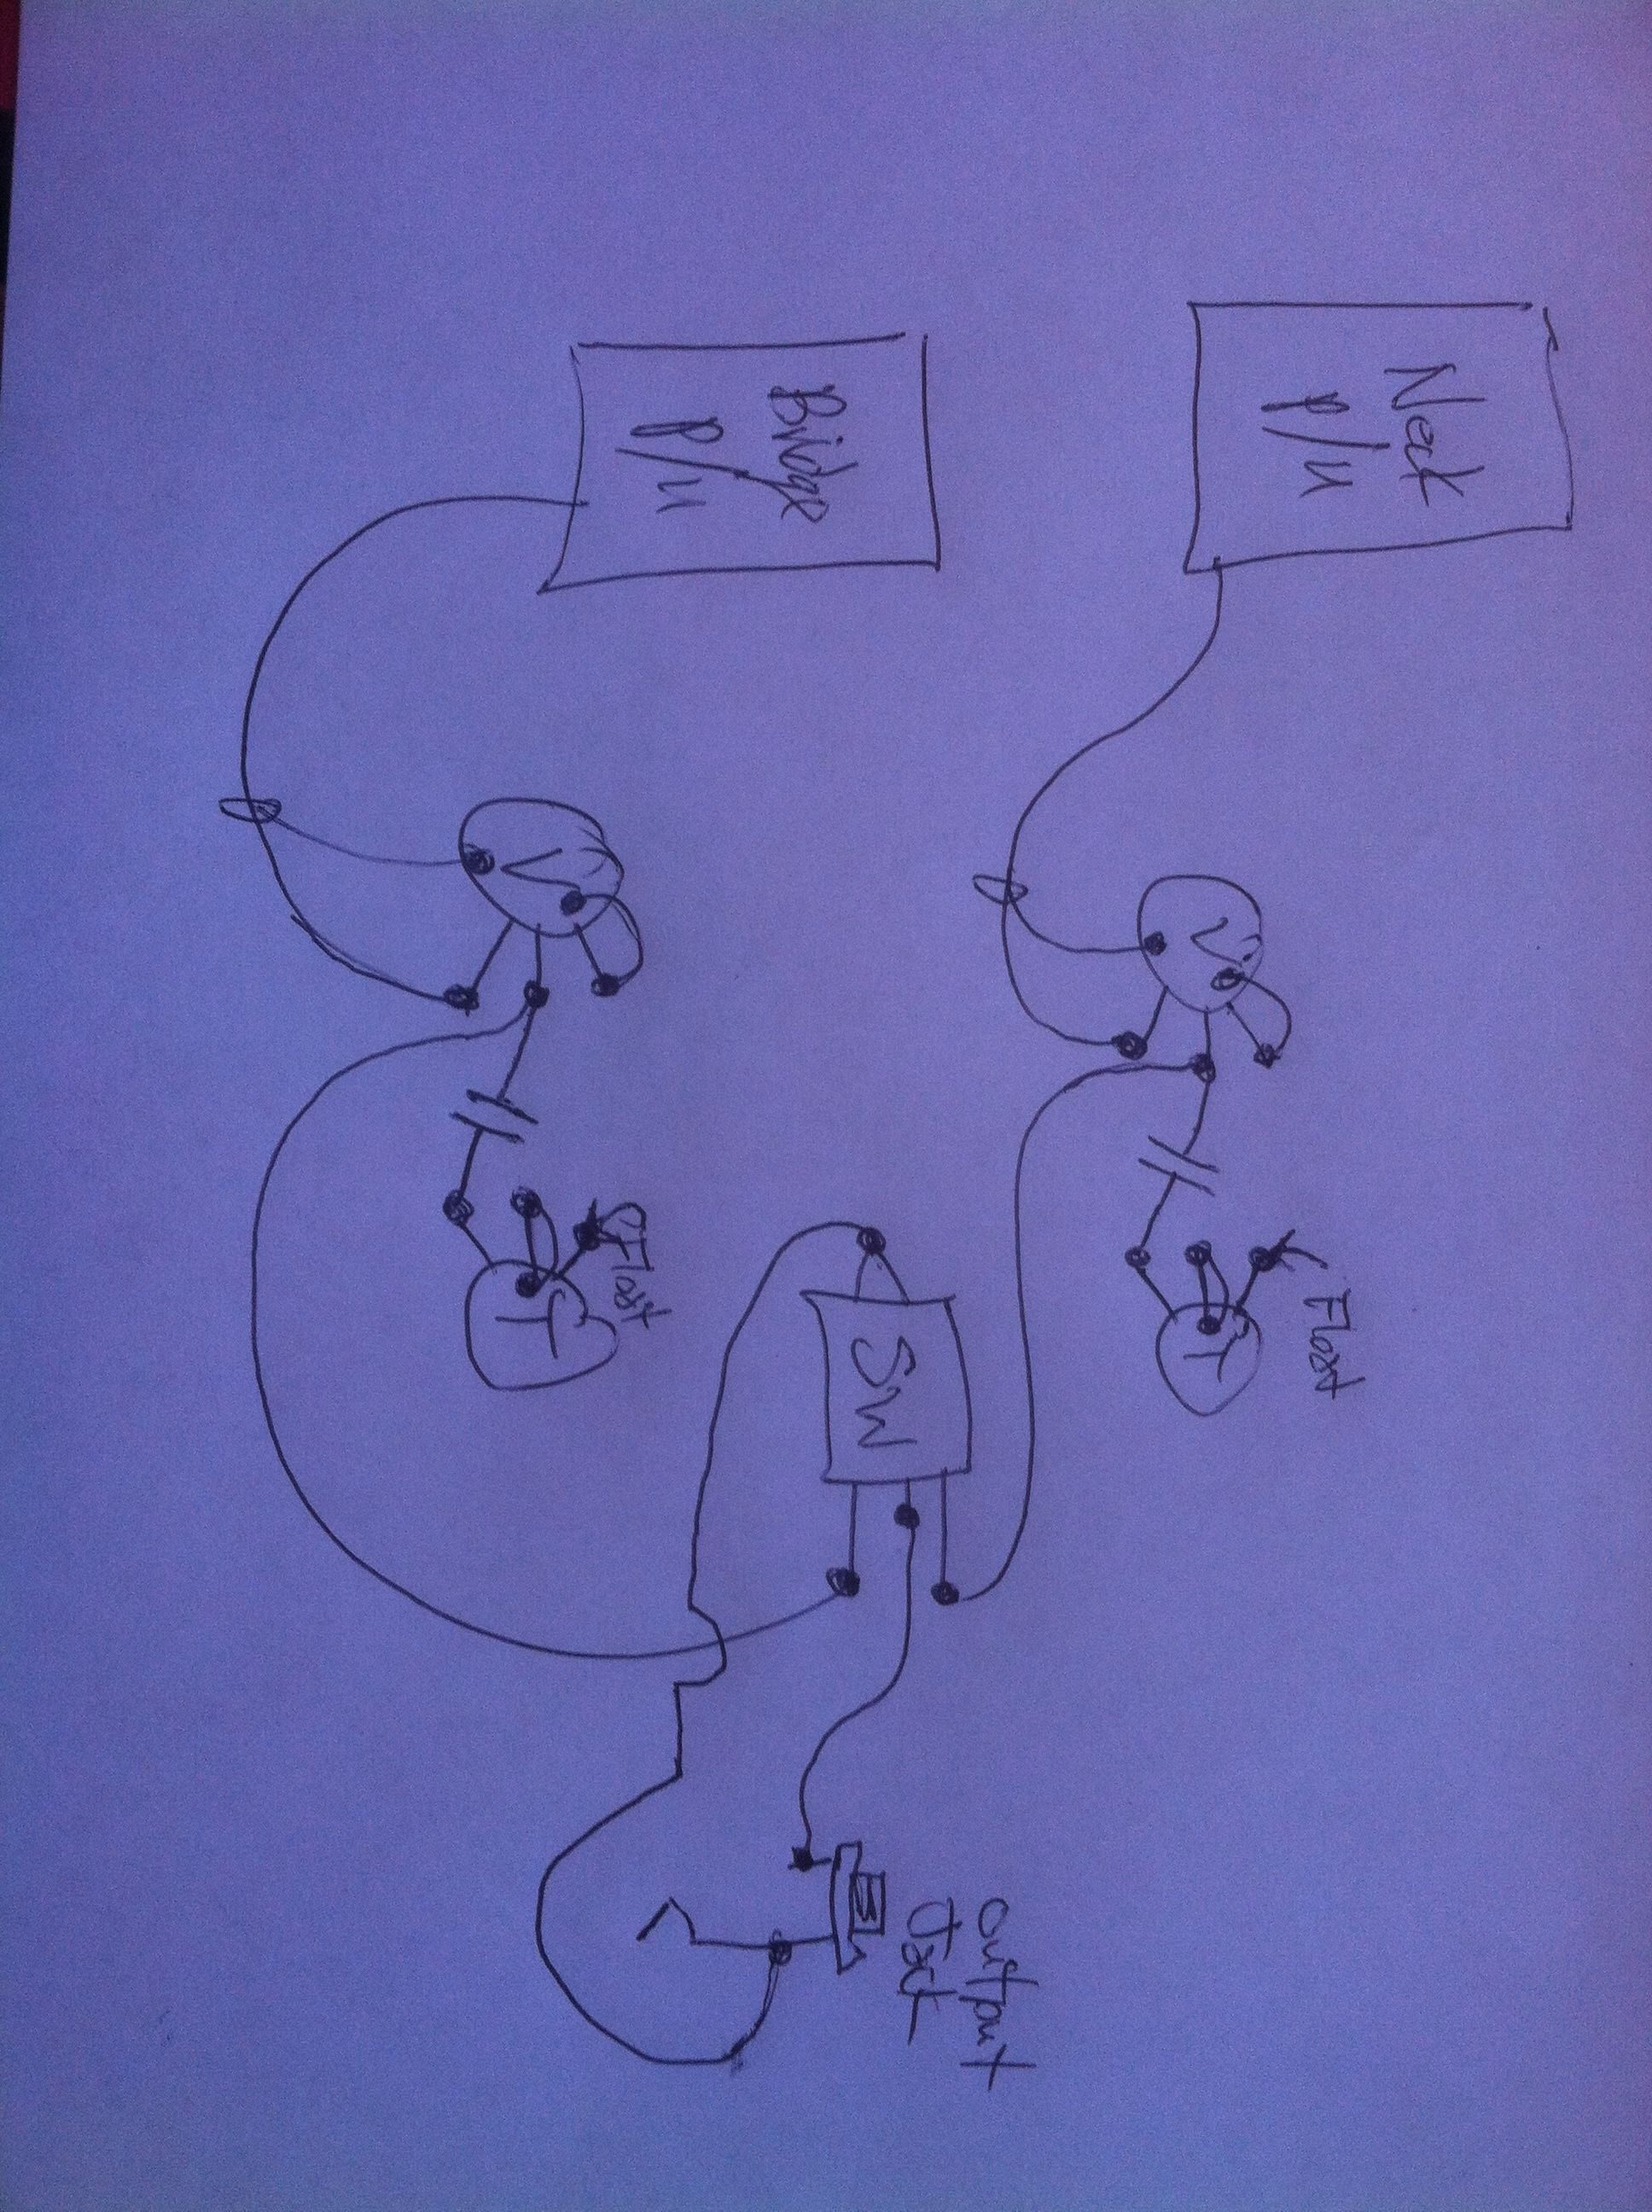 medium resolution of this is the wiring diagram i will work from to wire up this guitar the way gibson did in the 50 s